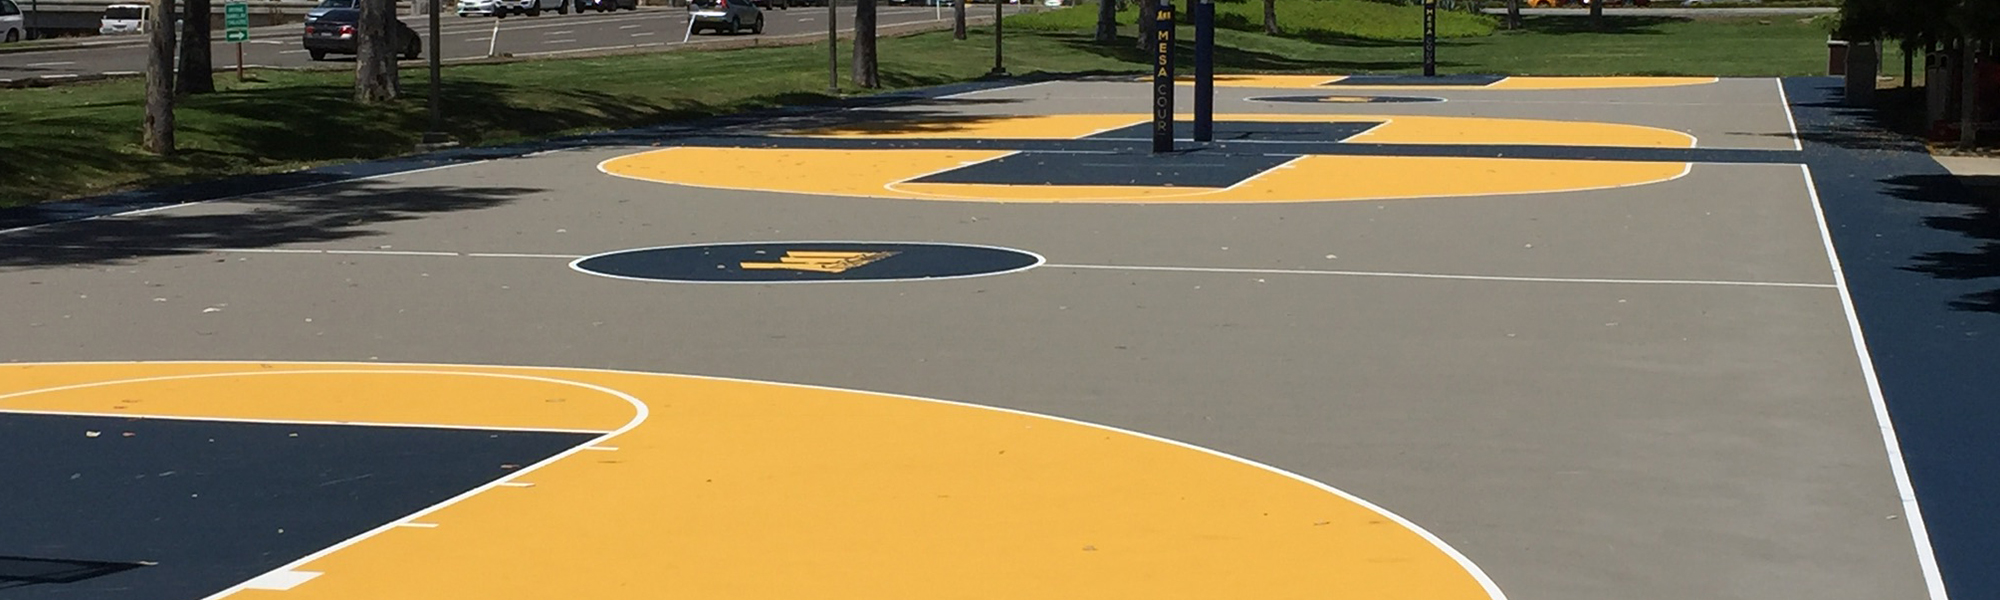 Tennis court resurfacing products and acrylic sport surfaces for Sport court paint